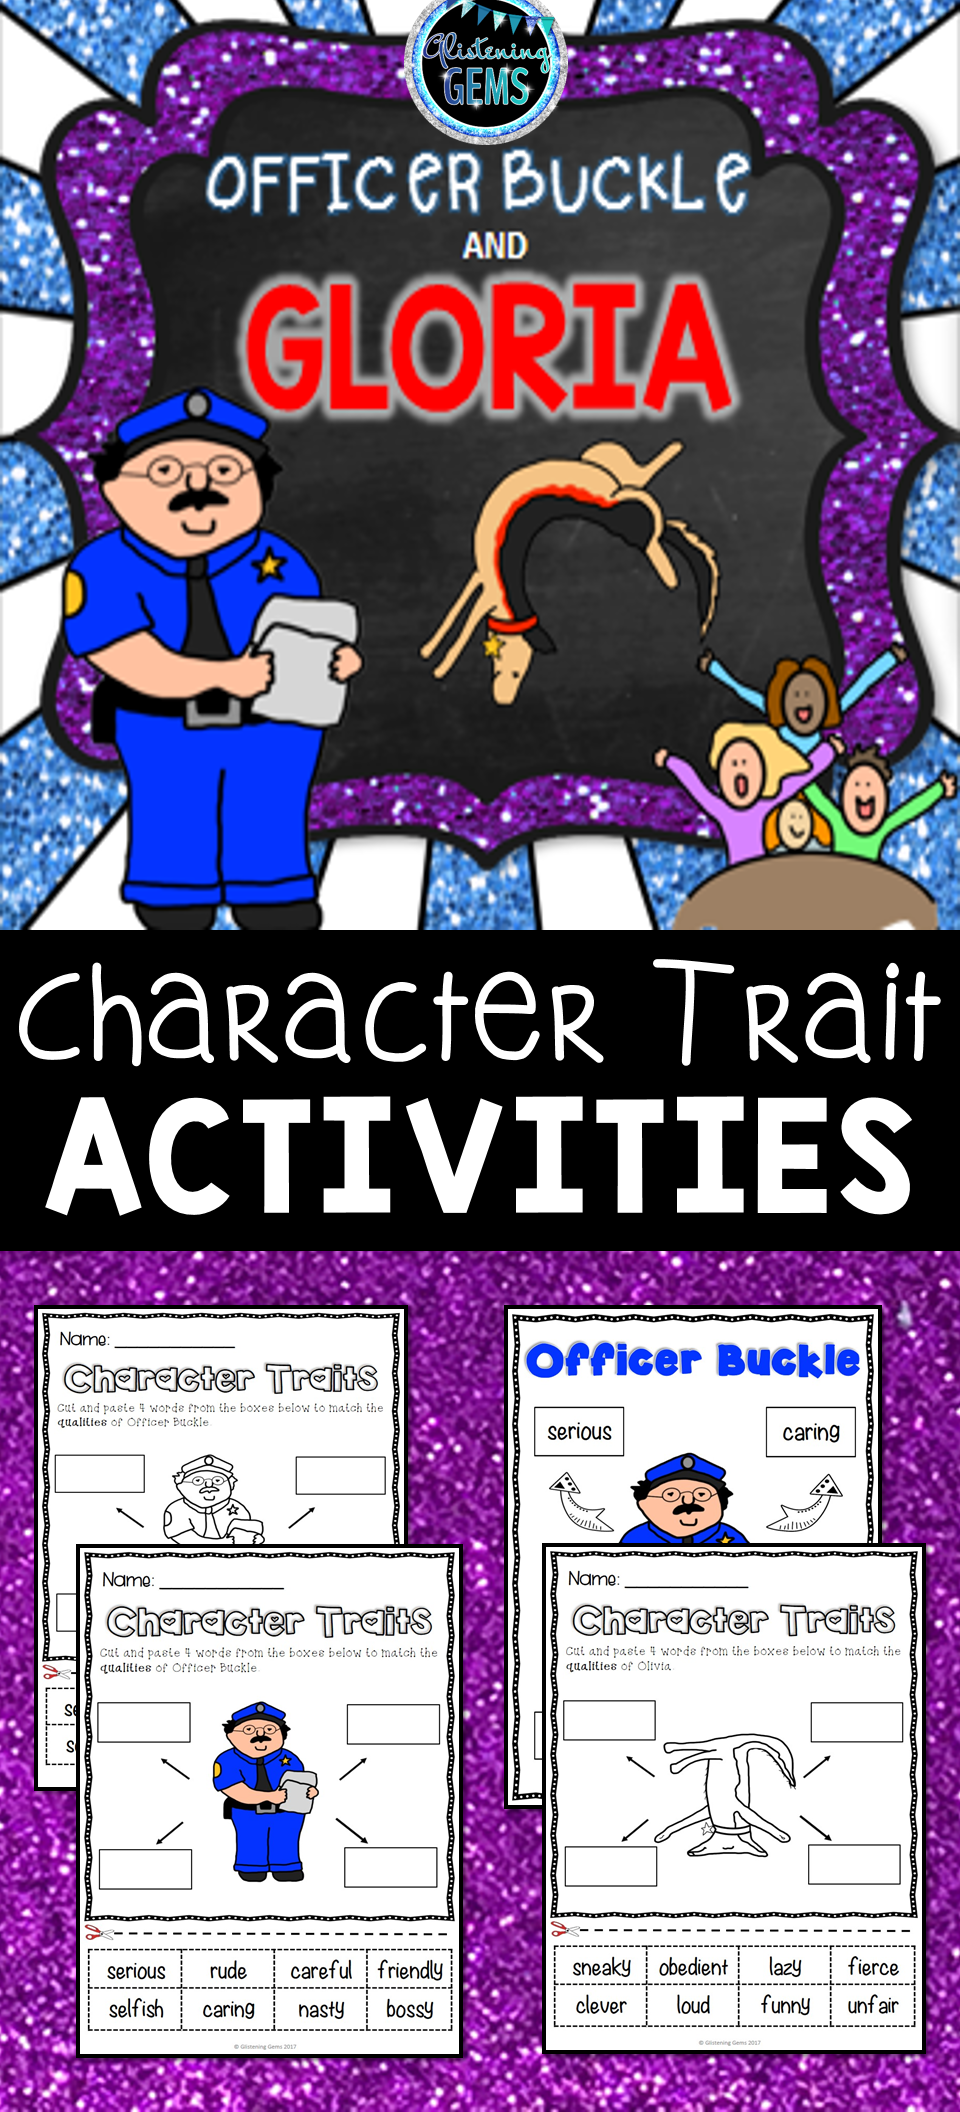 worksheet Officer Buckle And Gloria Worksheets officer buckle and gloria character traits trait traits